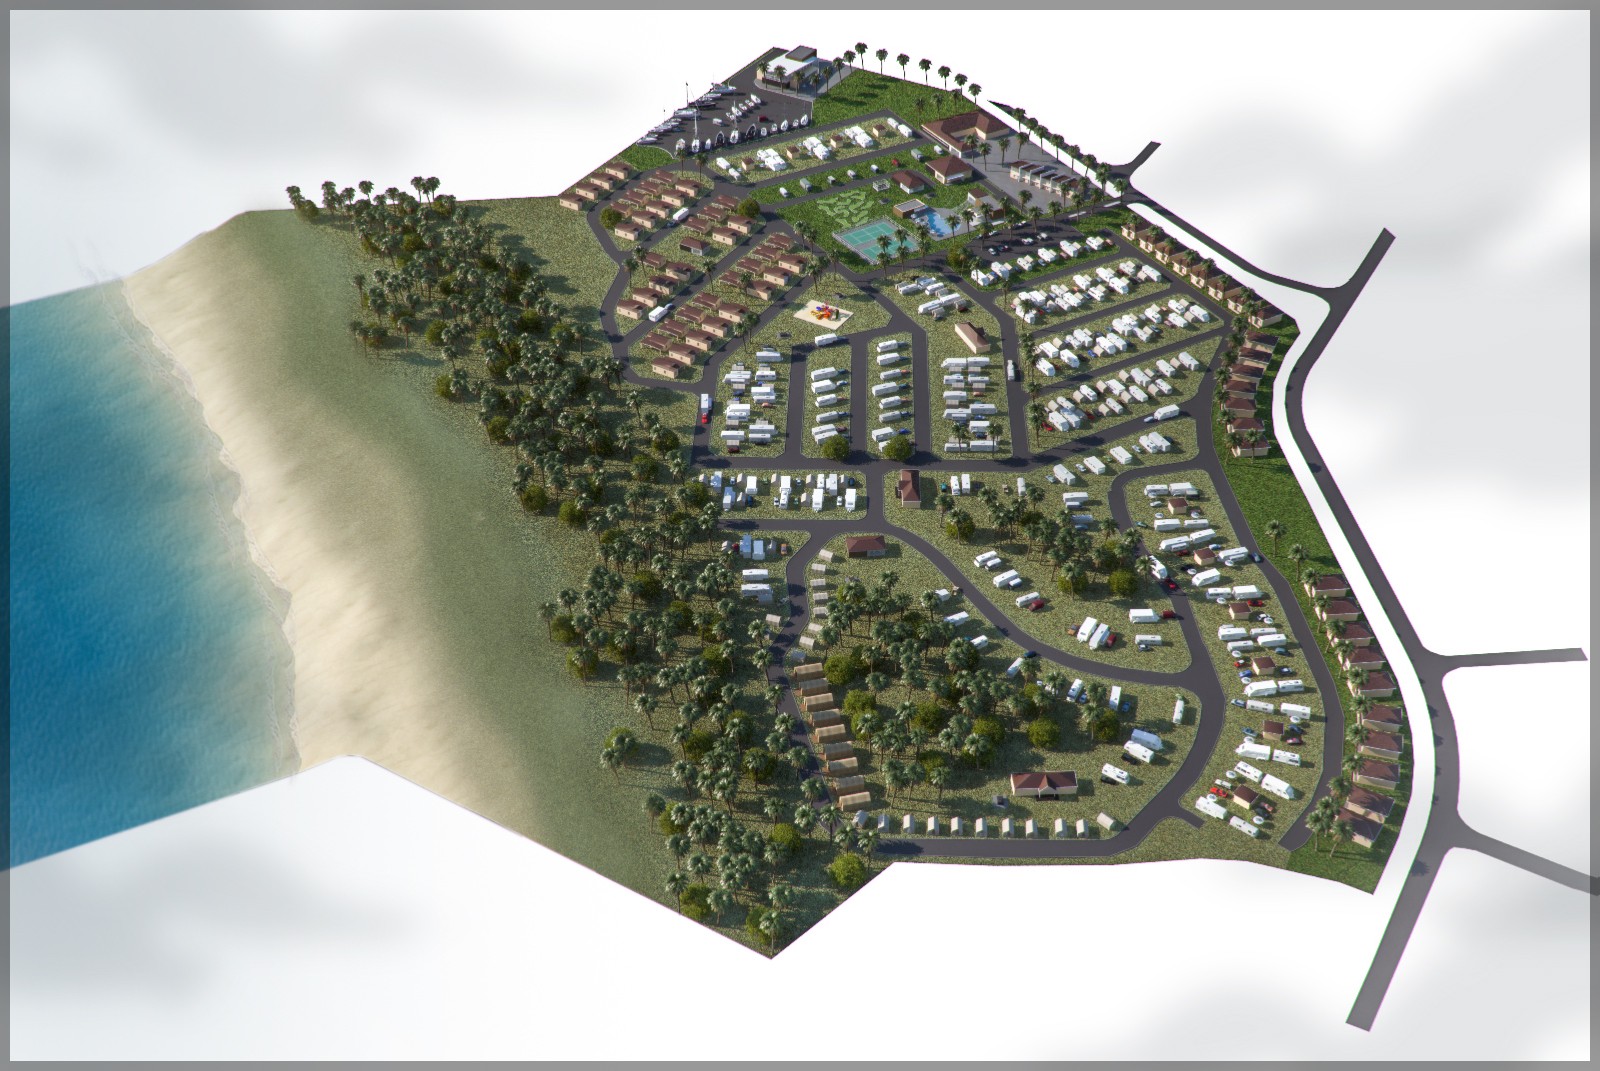 3D Design Drawings Display Caravan Park Site Concepts